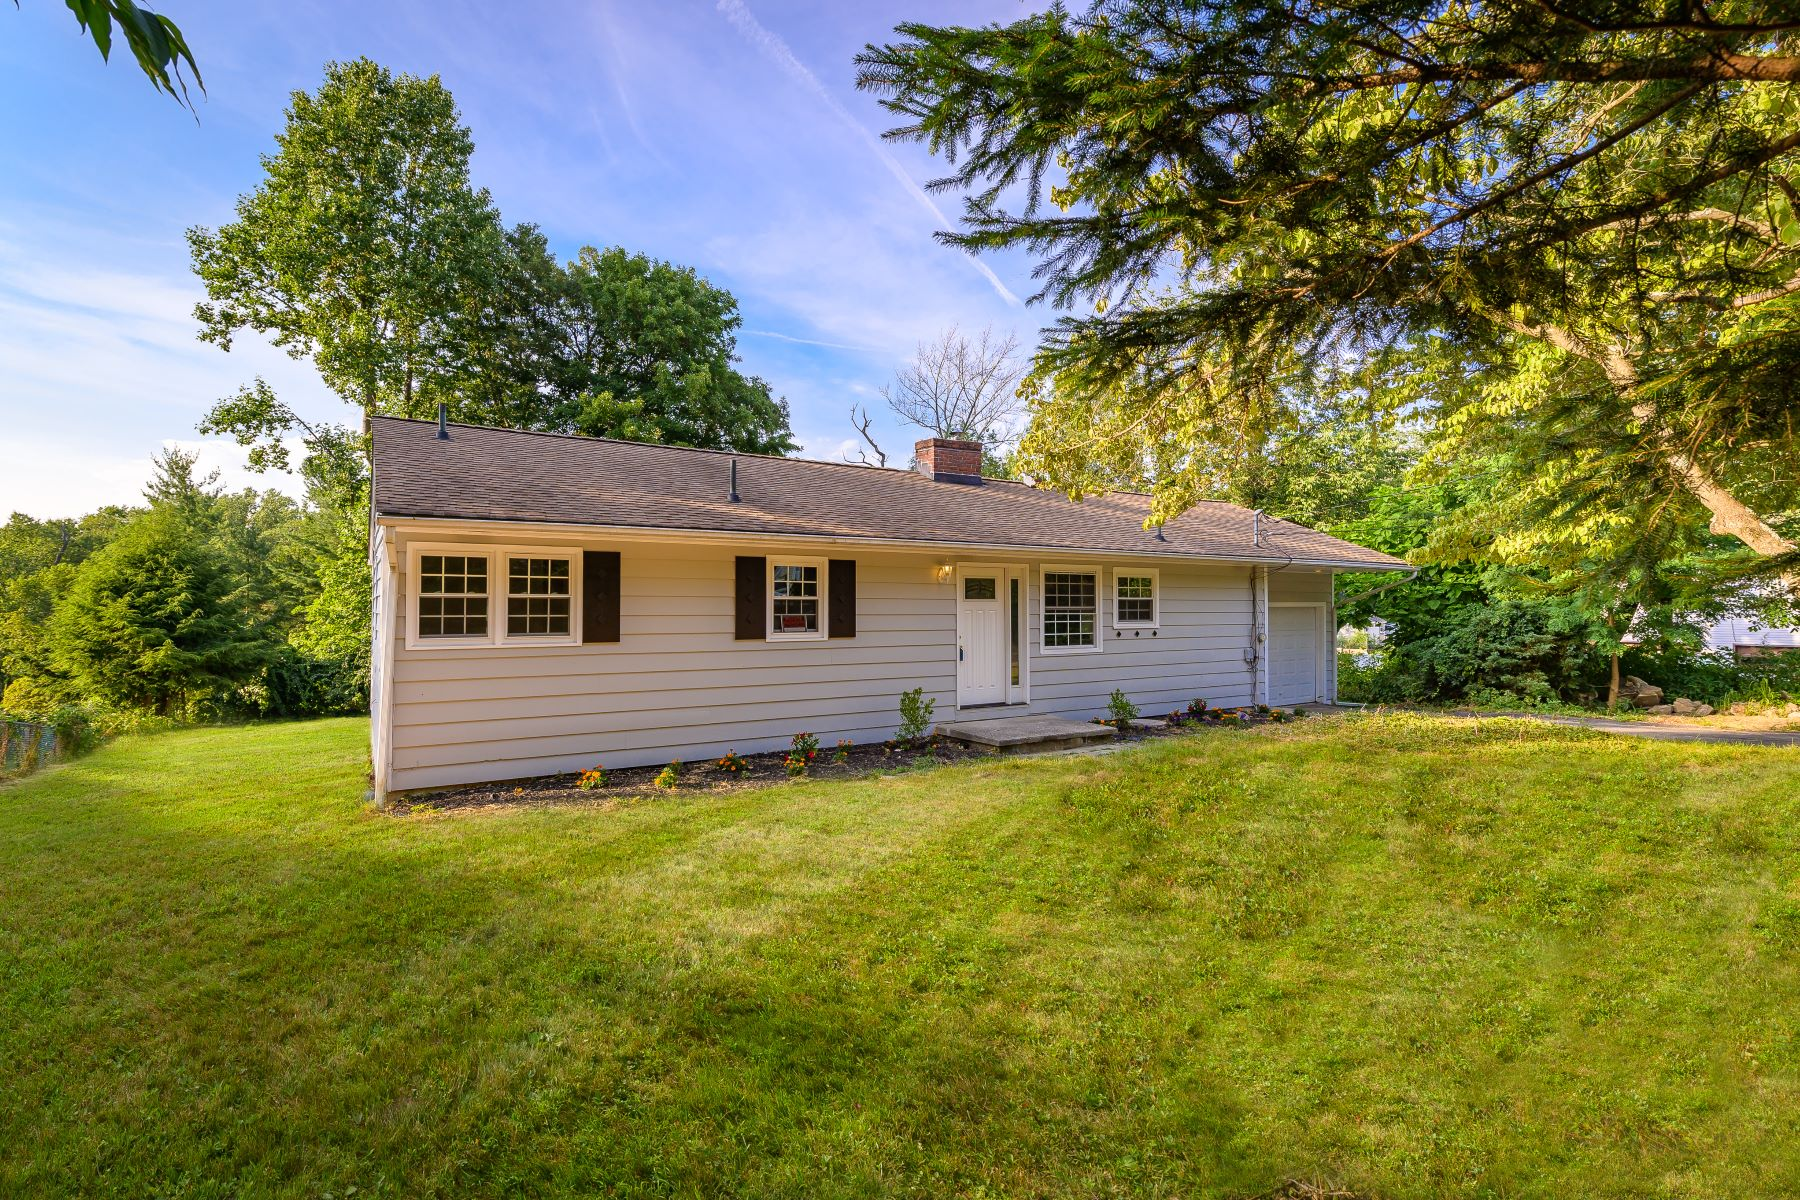 Single Family Homes for Sale at Adorable Danbury Ranch 3 Haley Street Danbury, Connecticut 06811 United States